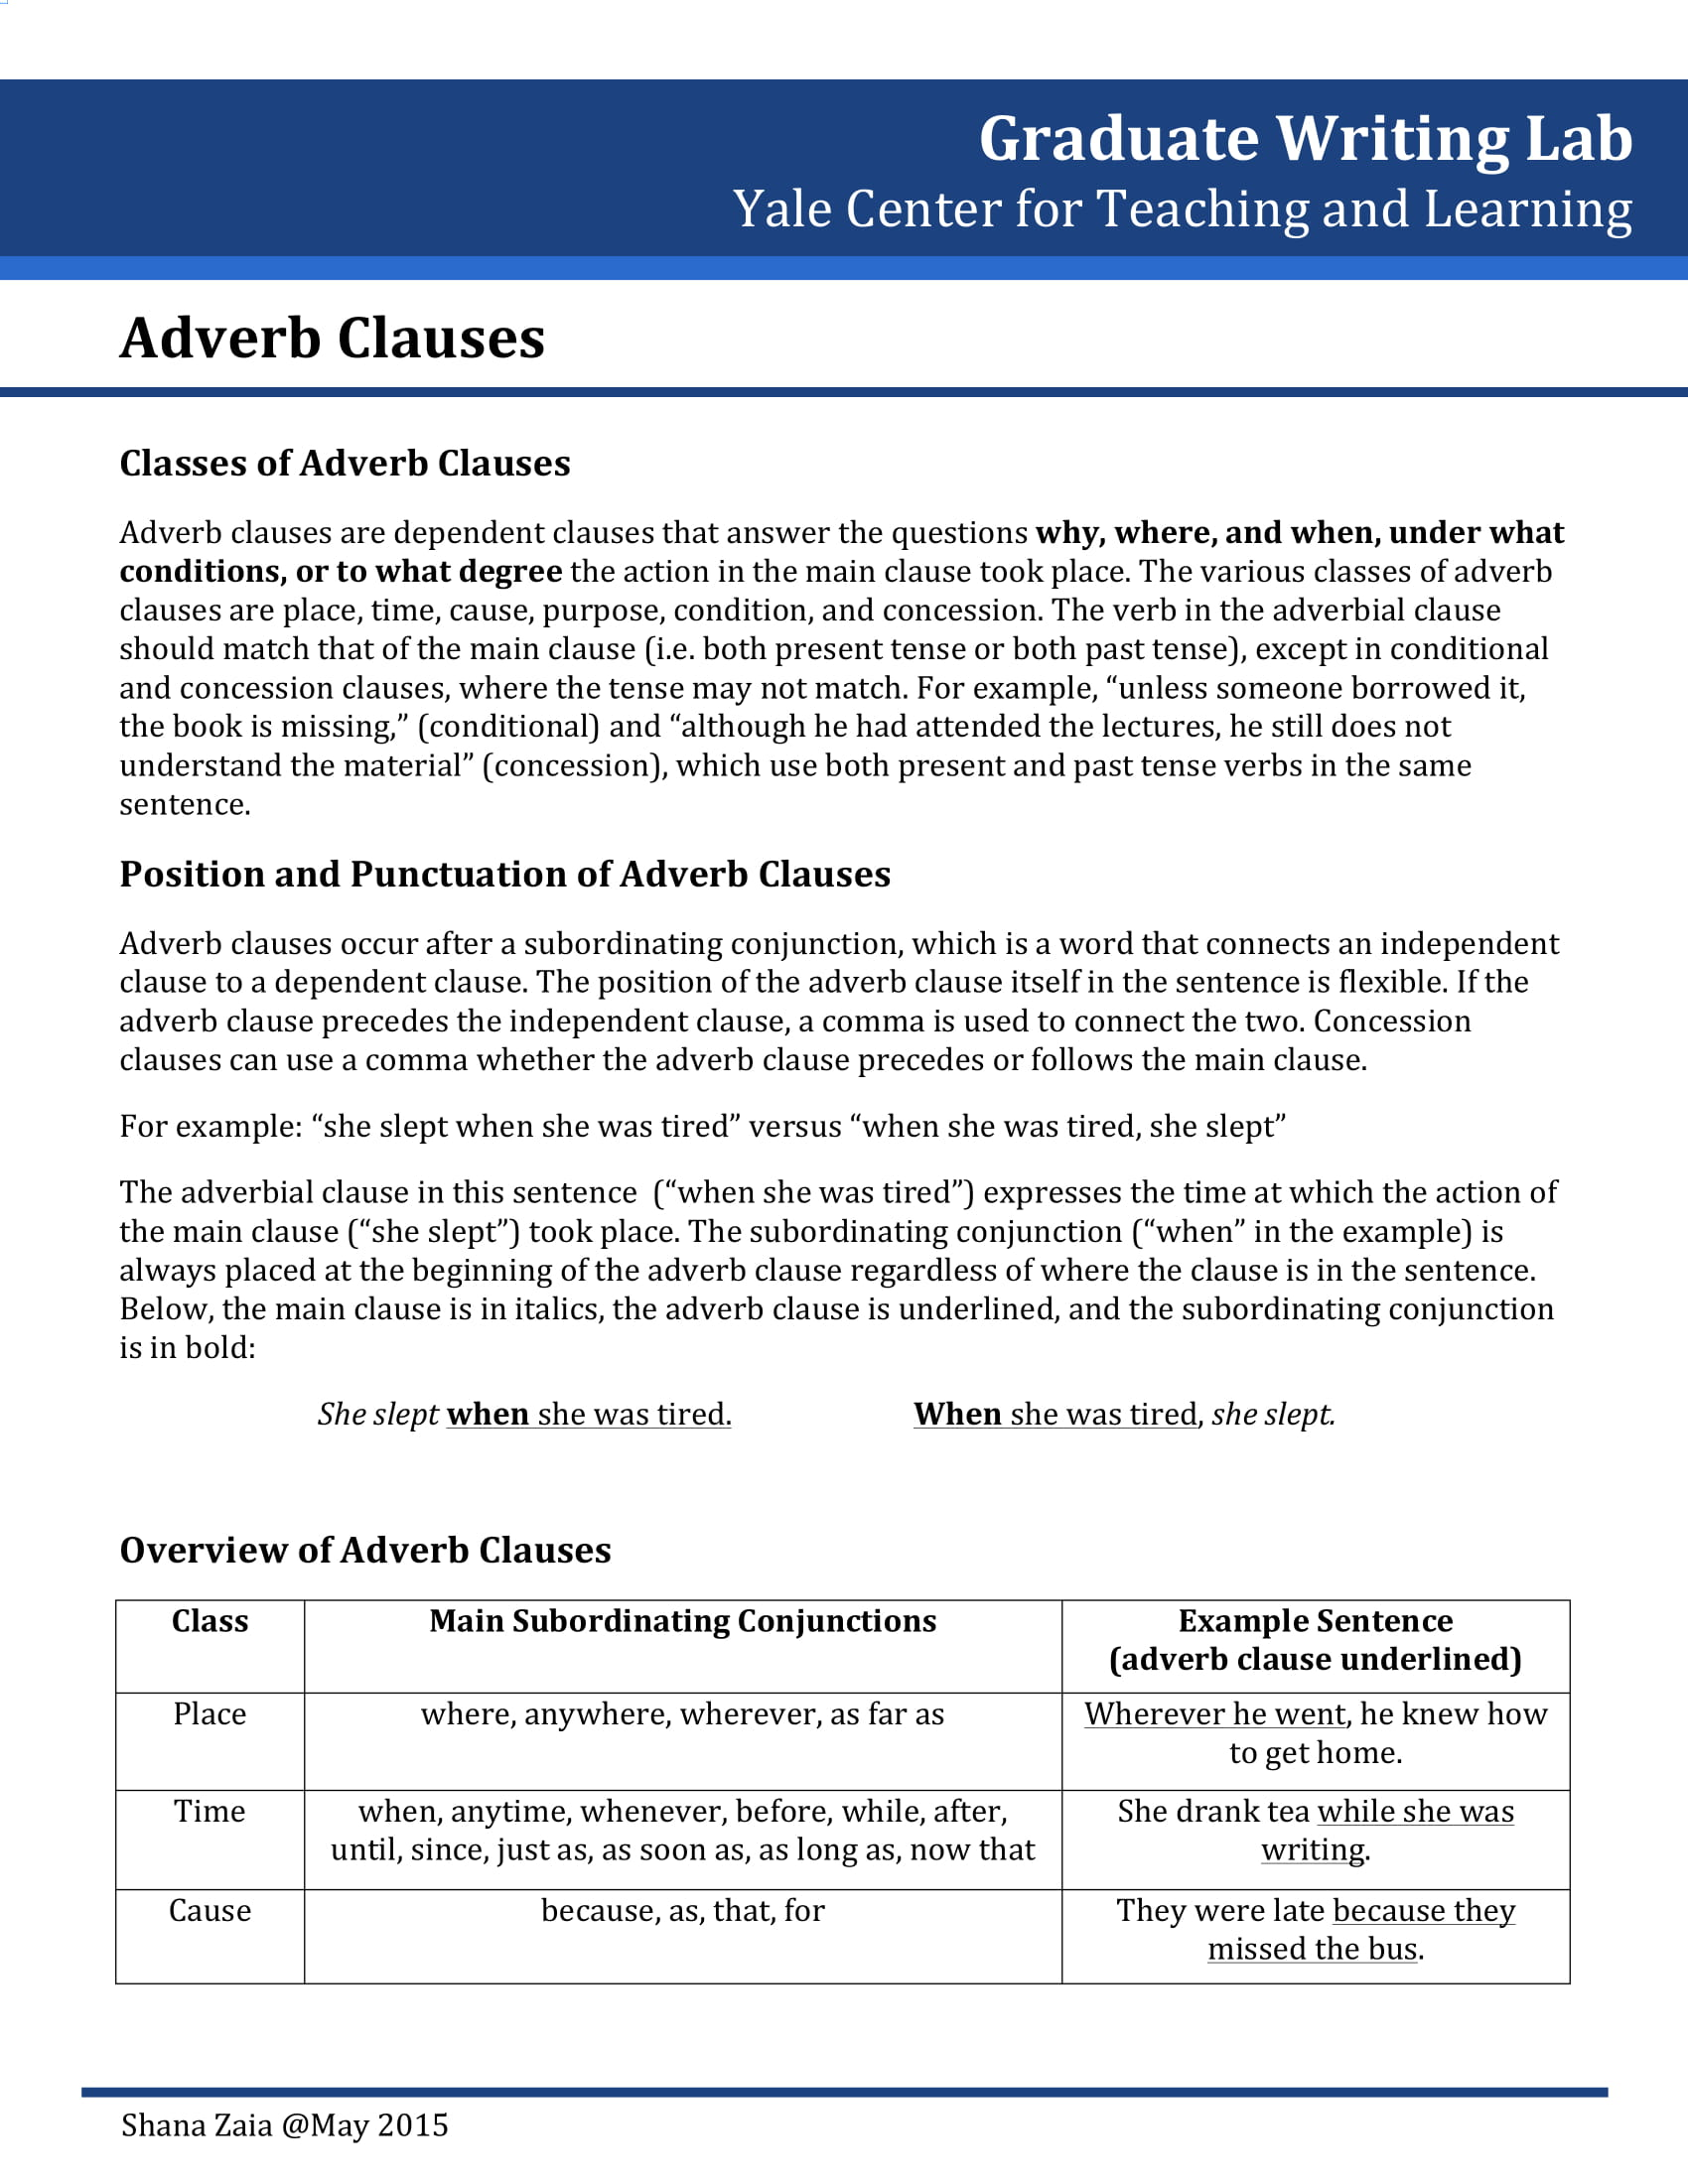 Adverb Clause Guide Example